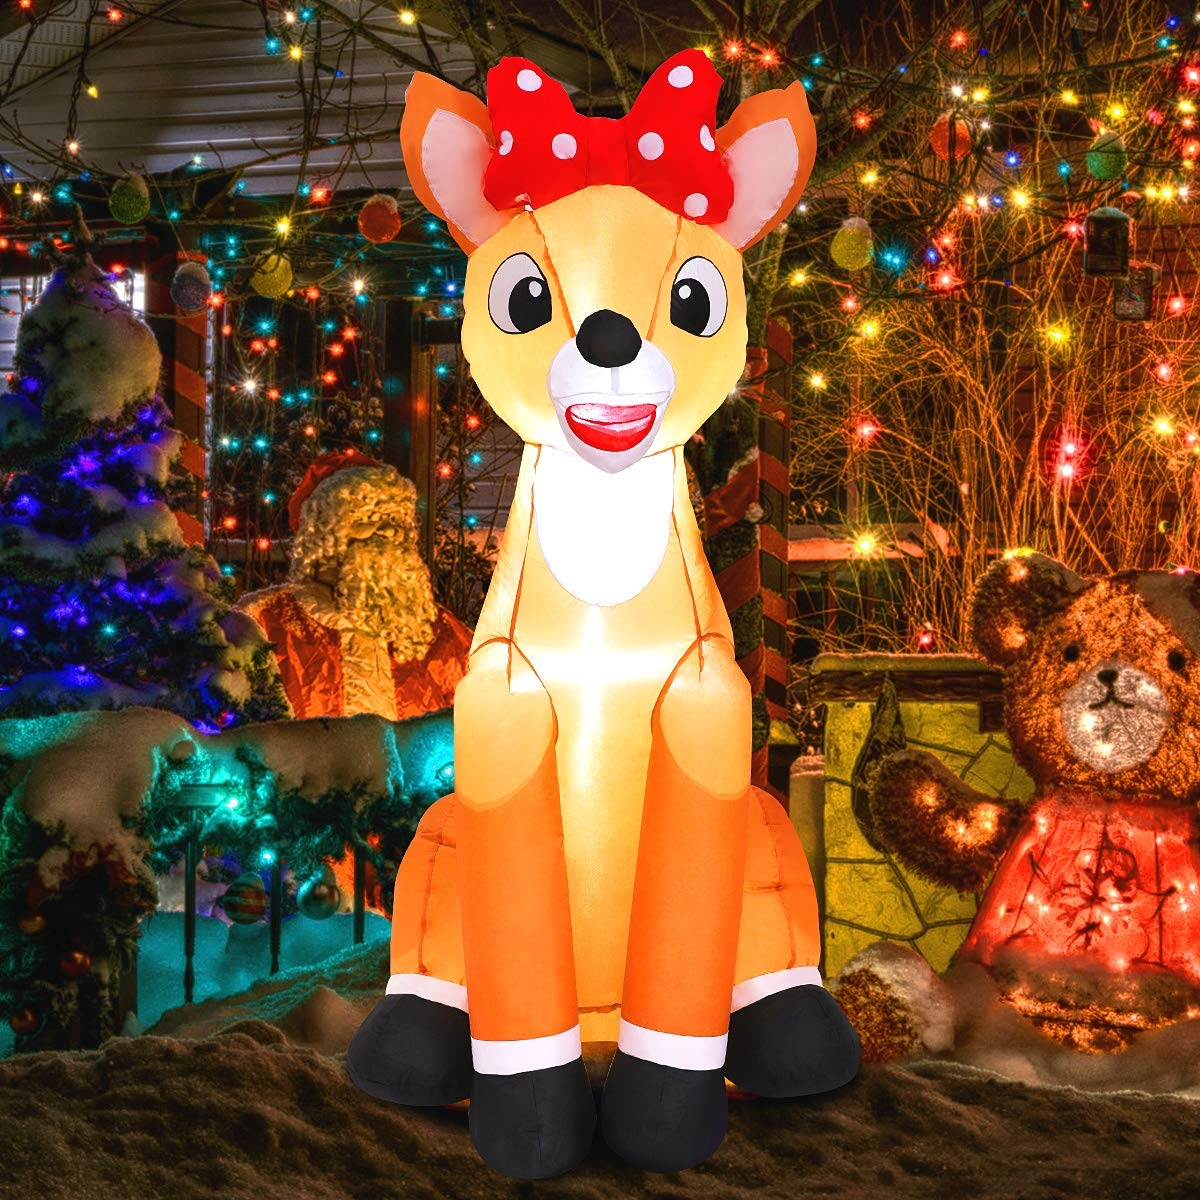 Maoyue Christmas Inflatables 4ft Christmas Reindeer Decorations Outdoor Inflatable Blow Up Christmas Decorations Built In Led Lights With Tethers Stakes For Outdoor Yard Roof Lawn Amazon Com Au Lawn Garden